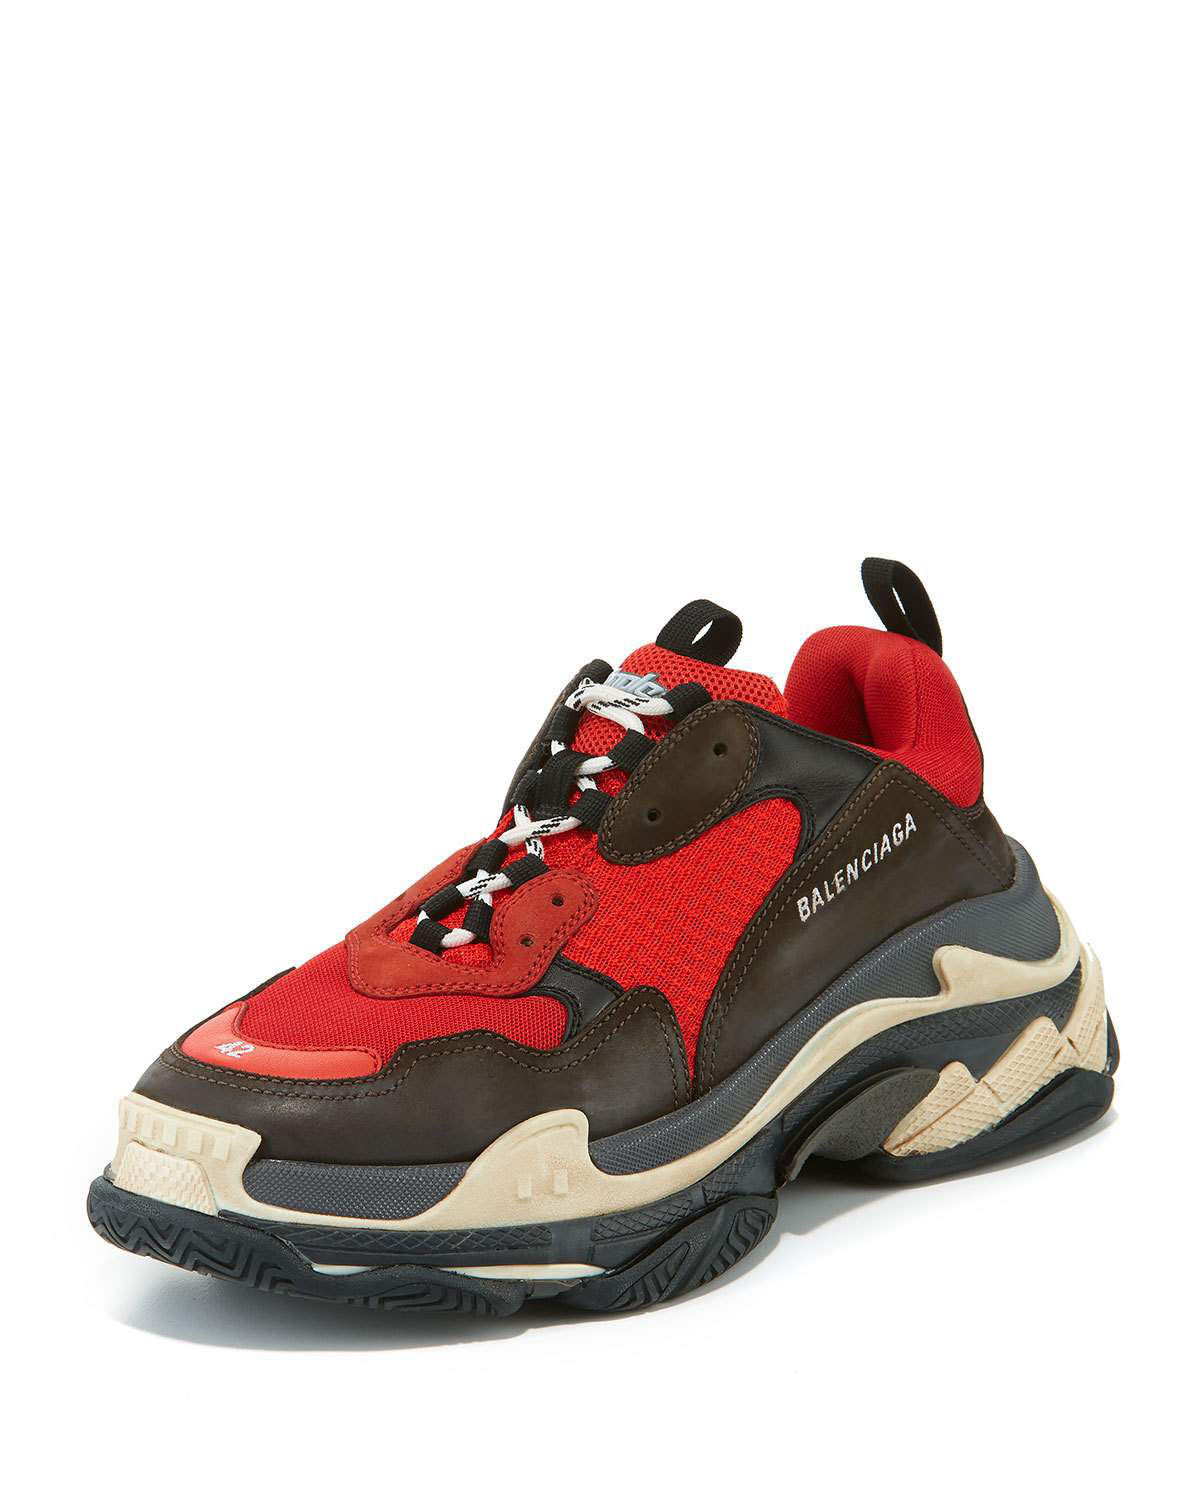 550b55d9e8a62 Balenciaga Capsule Triple S Runner Leather And Mesh Trainers In Red ...